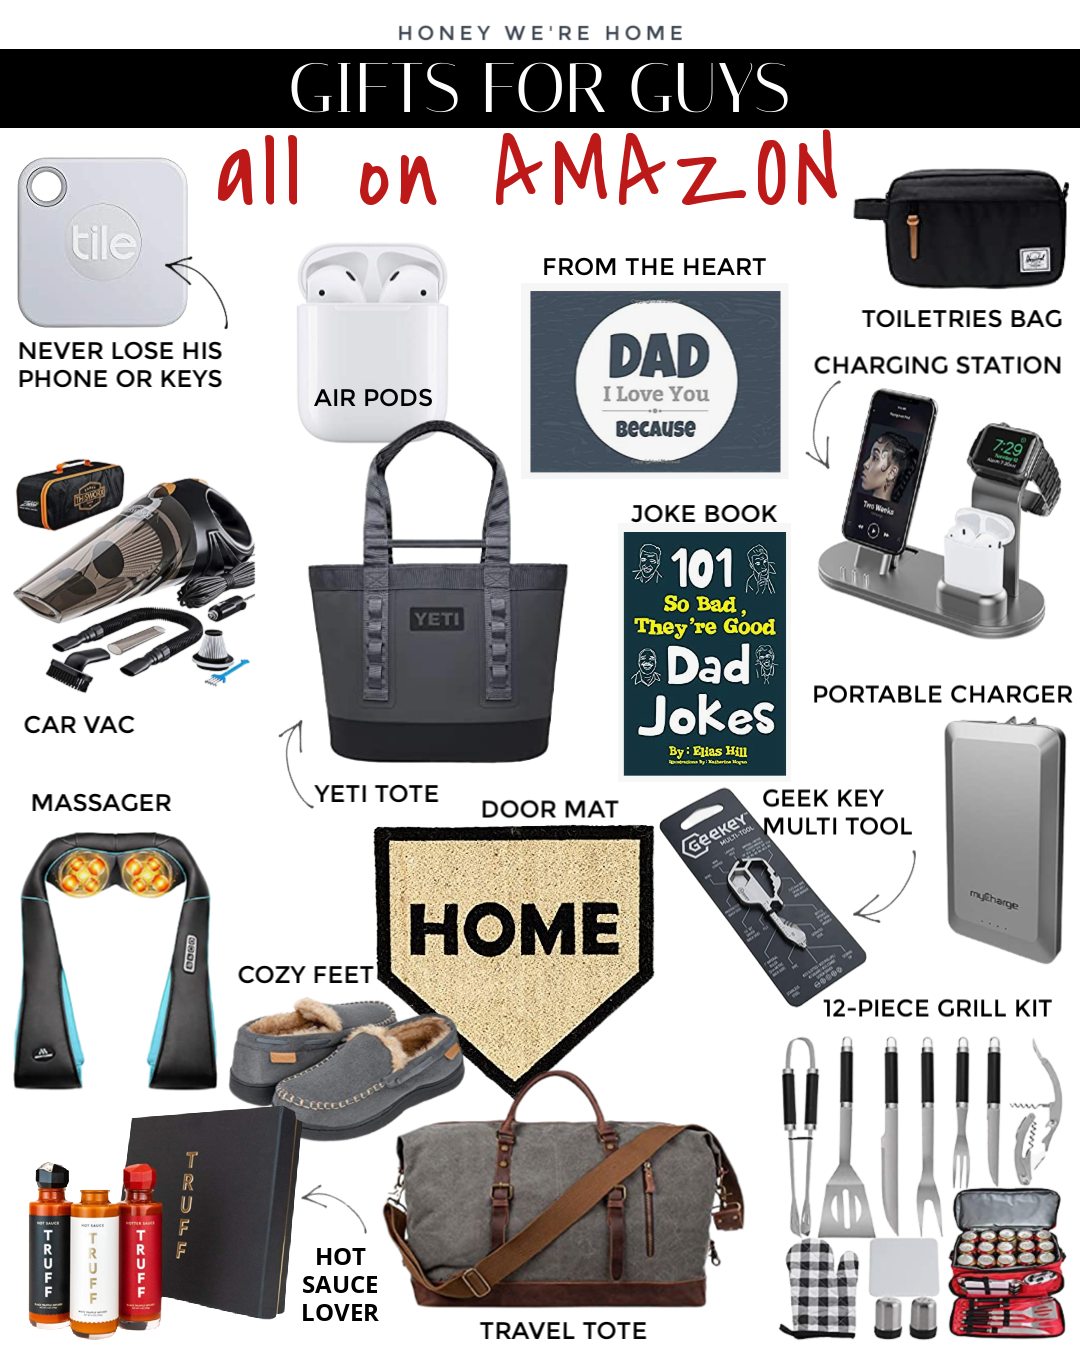 Gifts for Men | All on Amazon